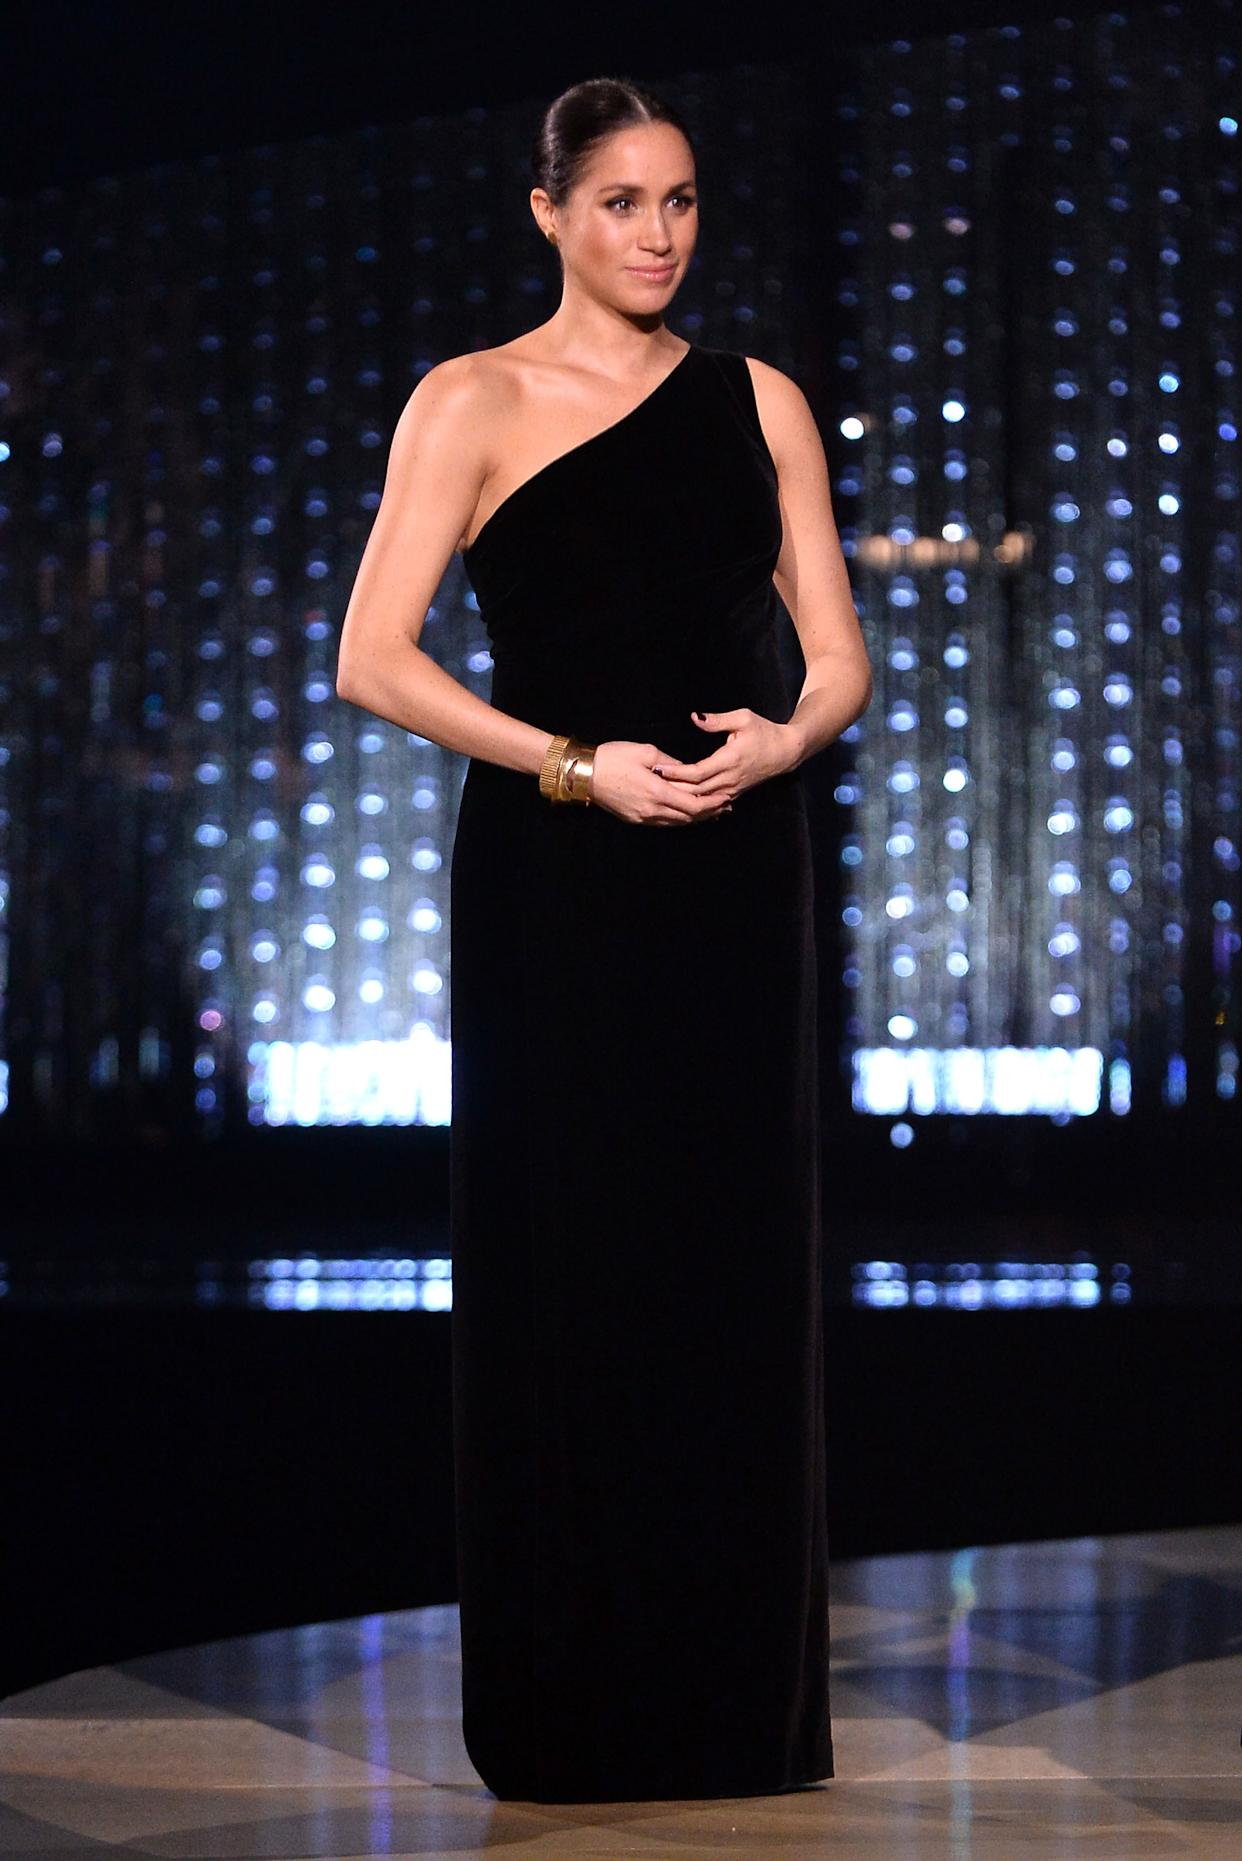 The Duchess of Sussex on stage during The Fashion Awards 2018 at Royal Albert Hall in London.